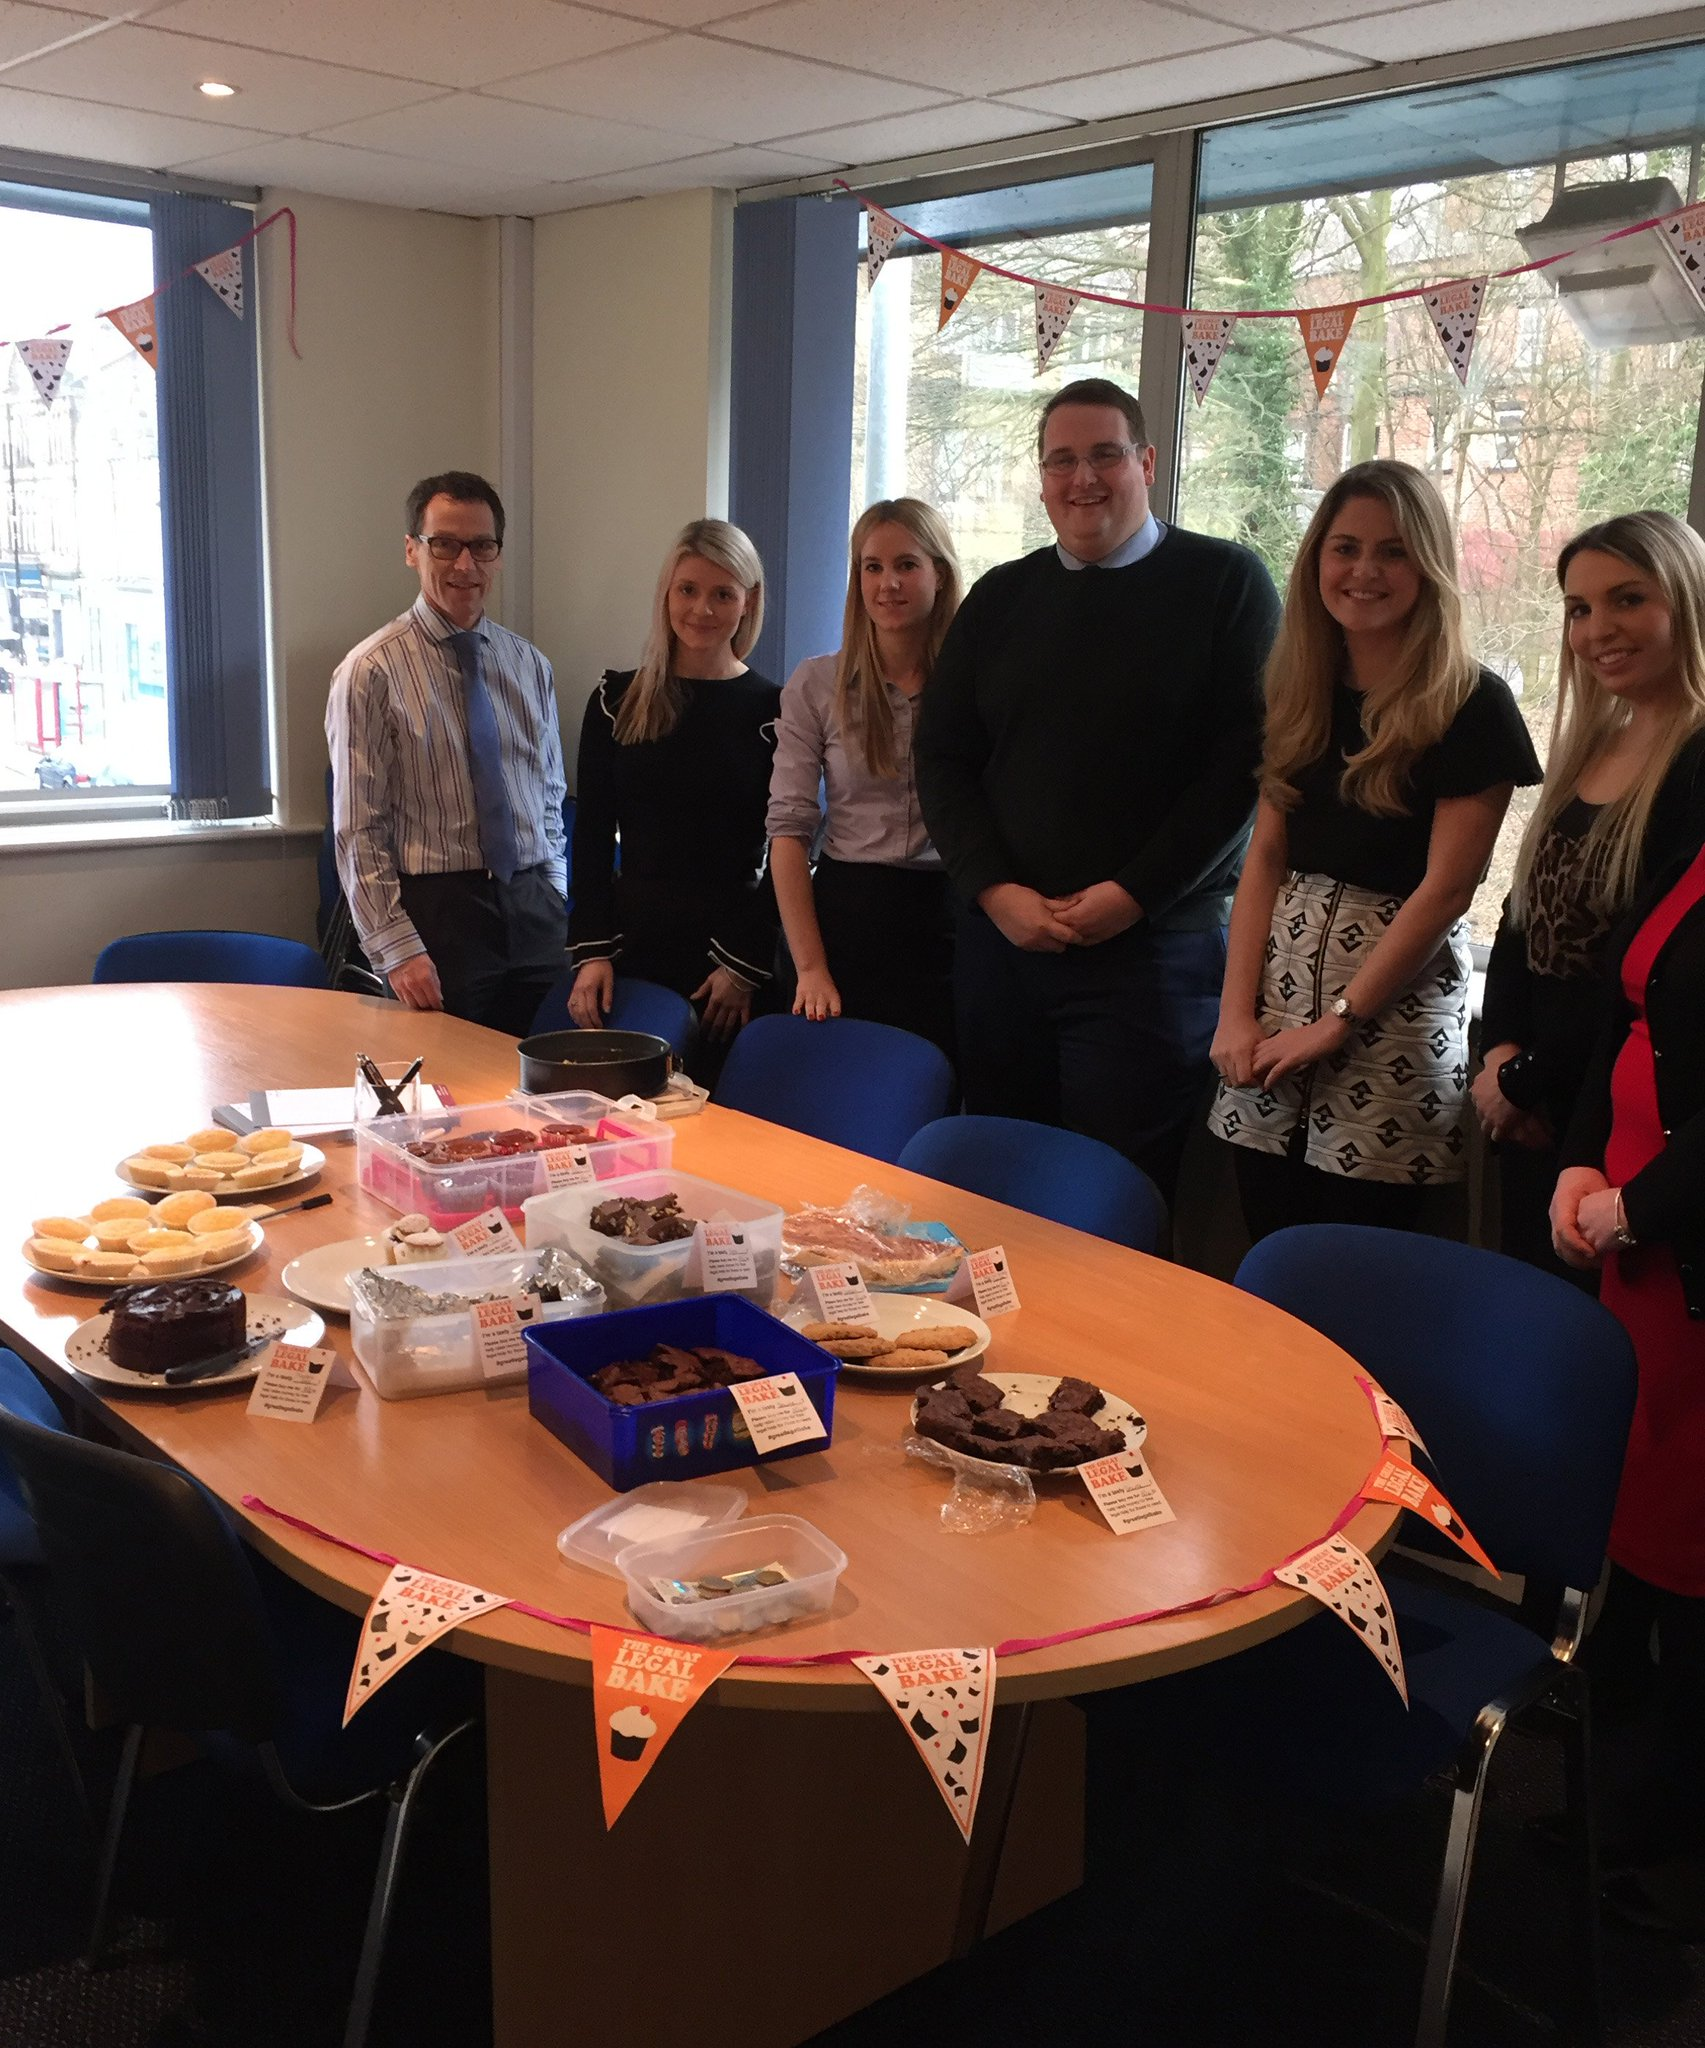 We had great fun taking part in the #greatlegalbake 2017. See our beautiful treats here: https://t.co/ZqxV0Q1fy9 #accesstojustice https://t.co/GFwh7VqtRT